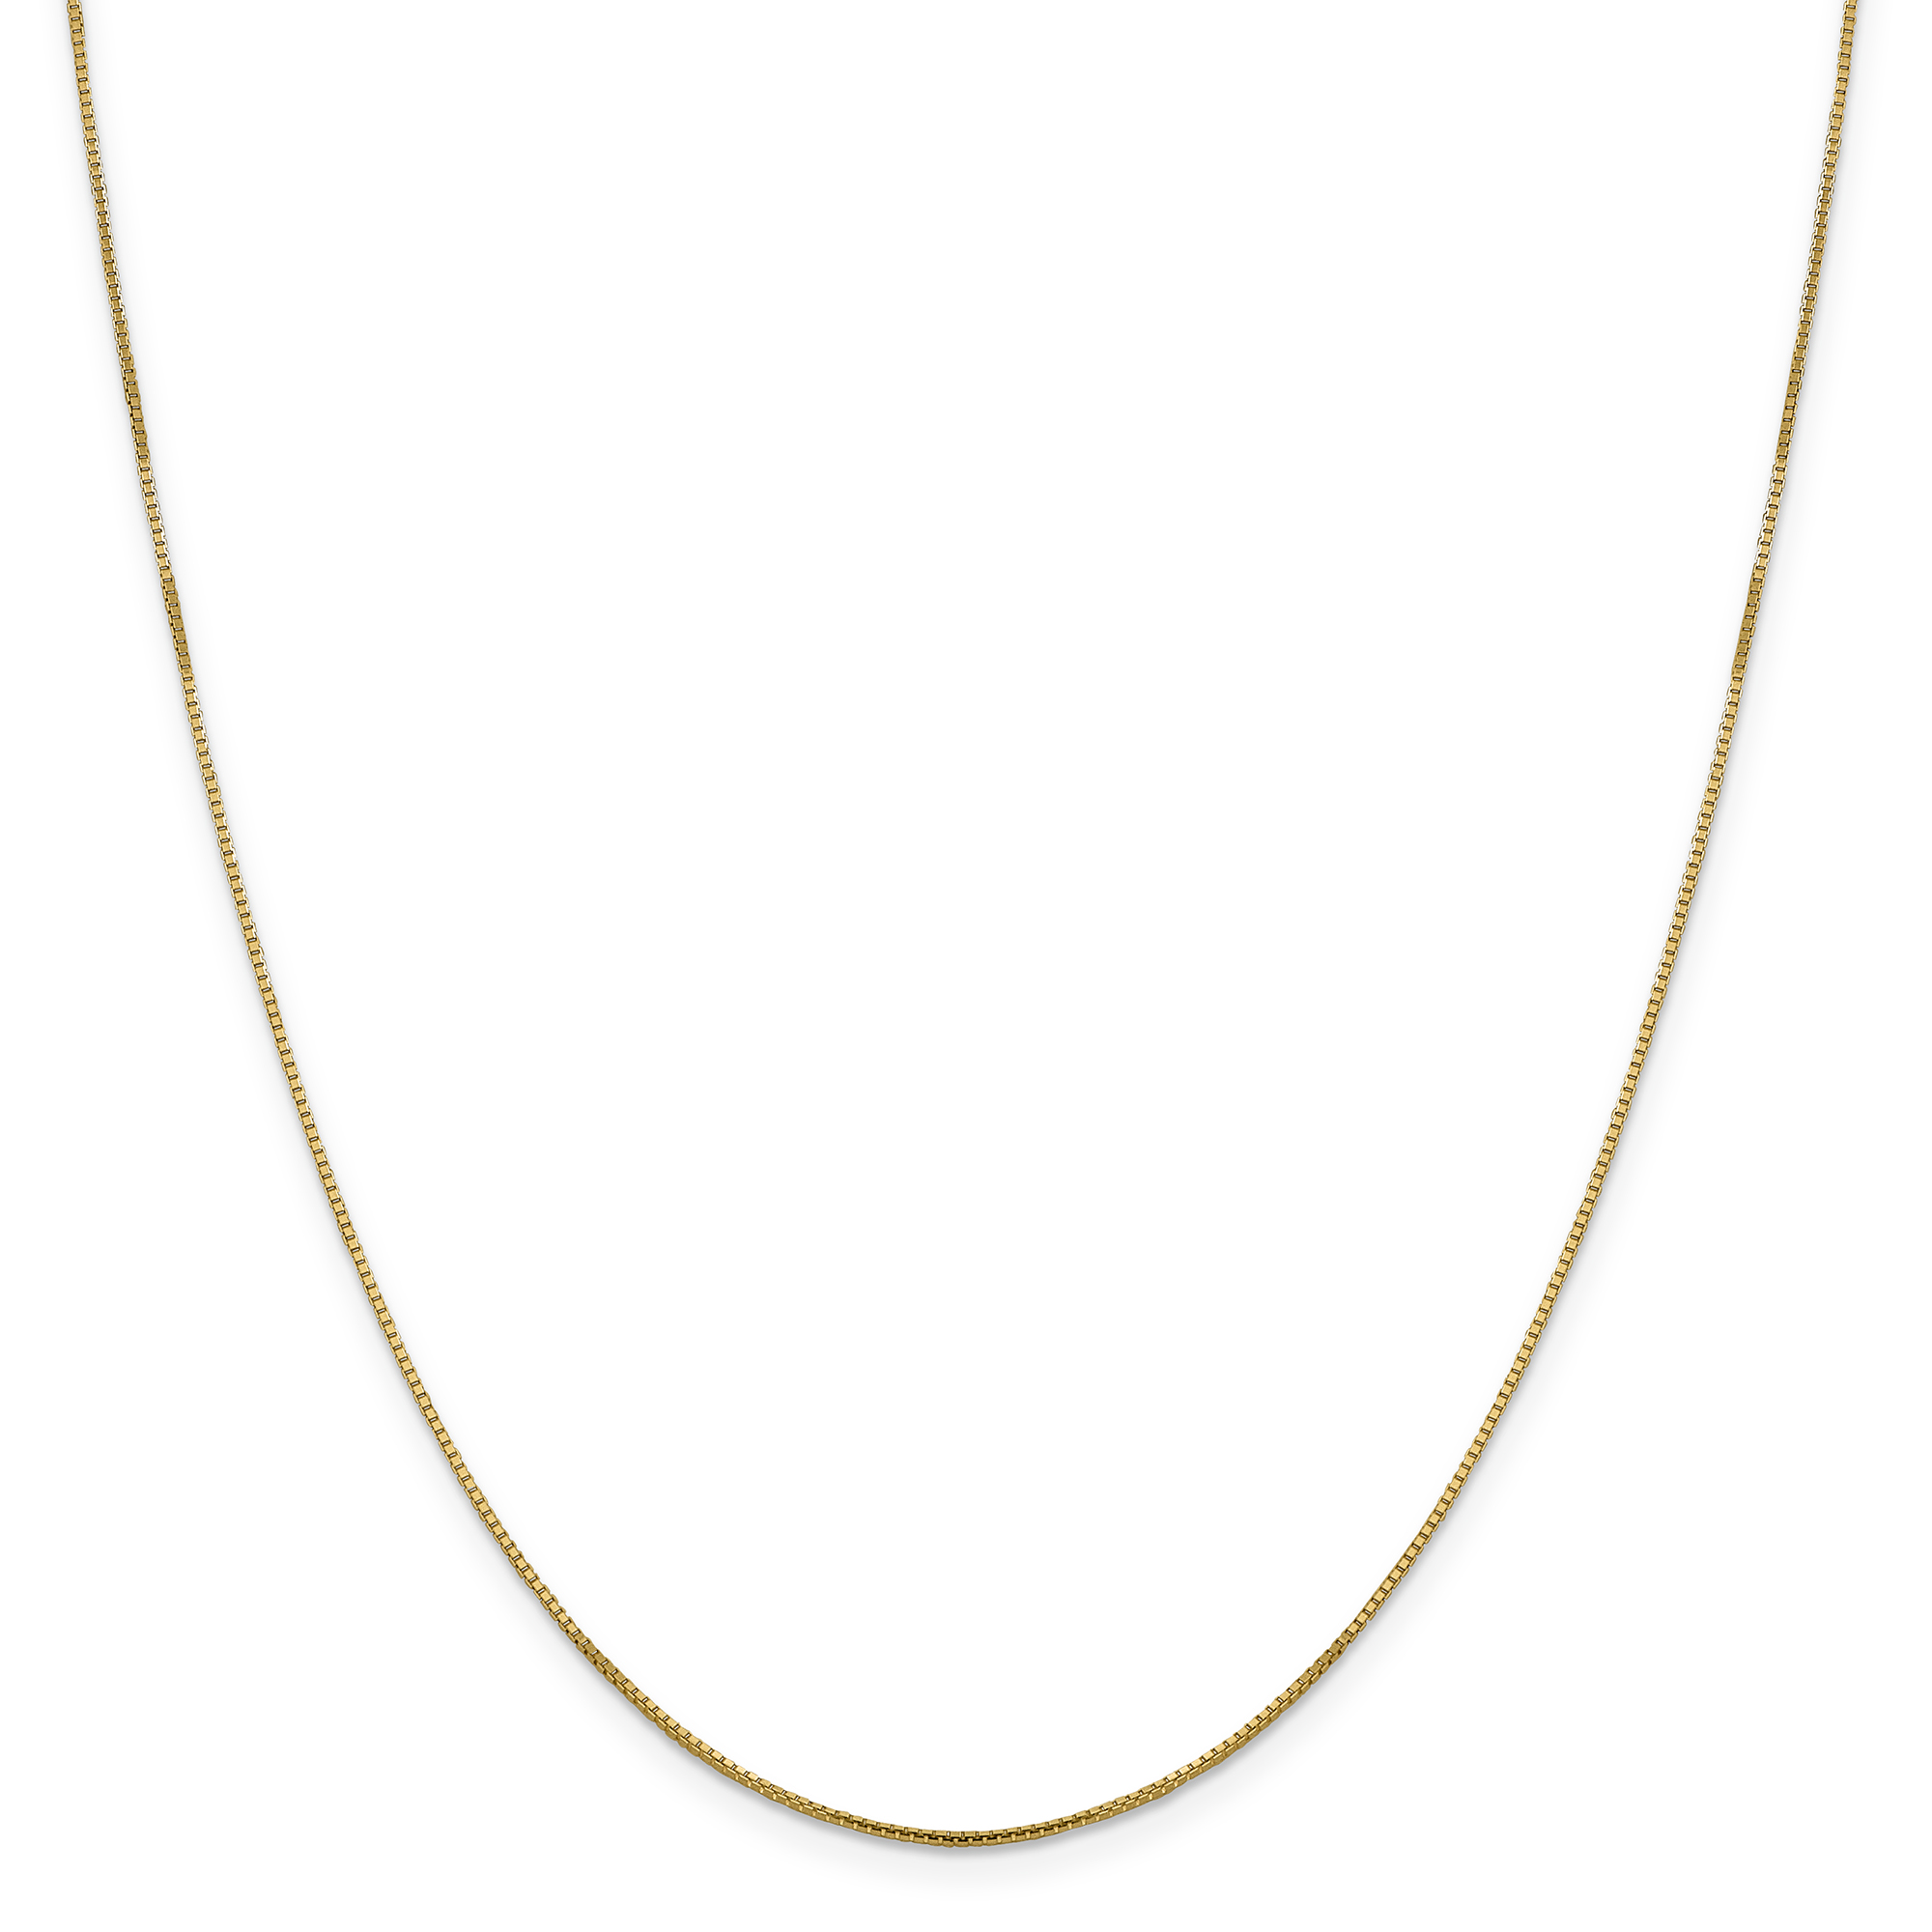 14k Yellow Gold 1 Mm Octagonal Sparkle Link Box Chain Necklace 16 Inch Pendant Charm Fine Jewelry Gifts For Women For Her - image 5 of 5